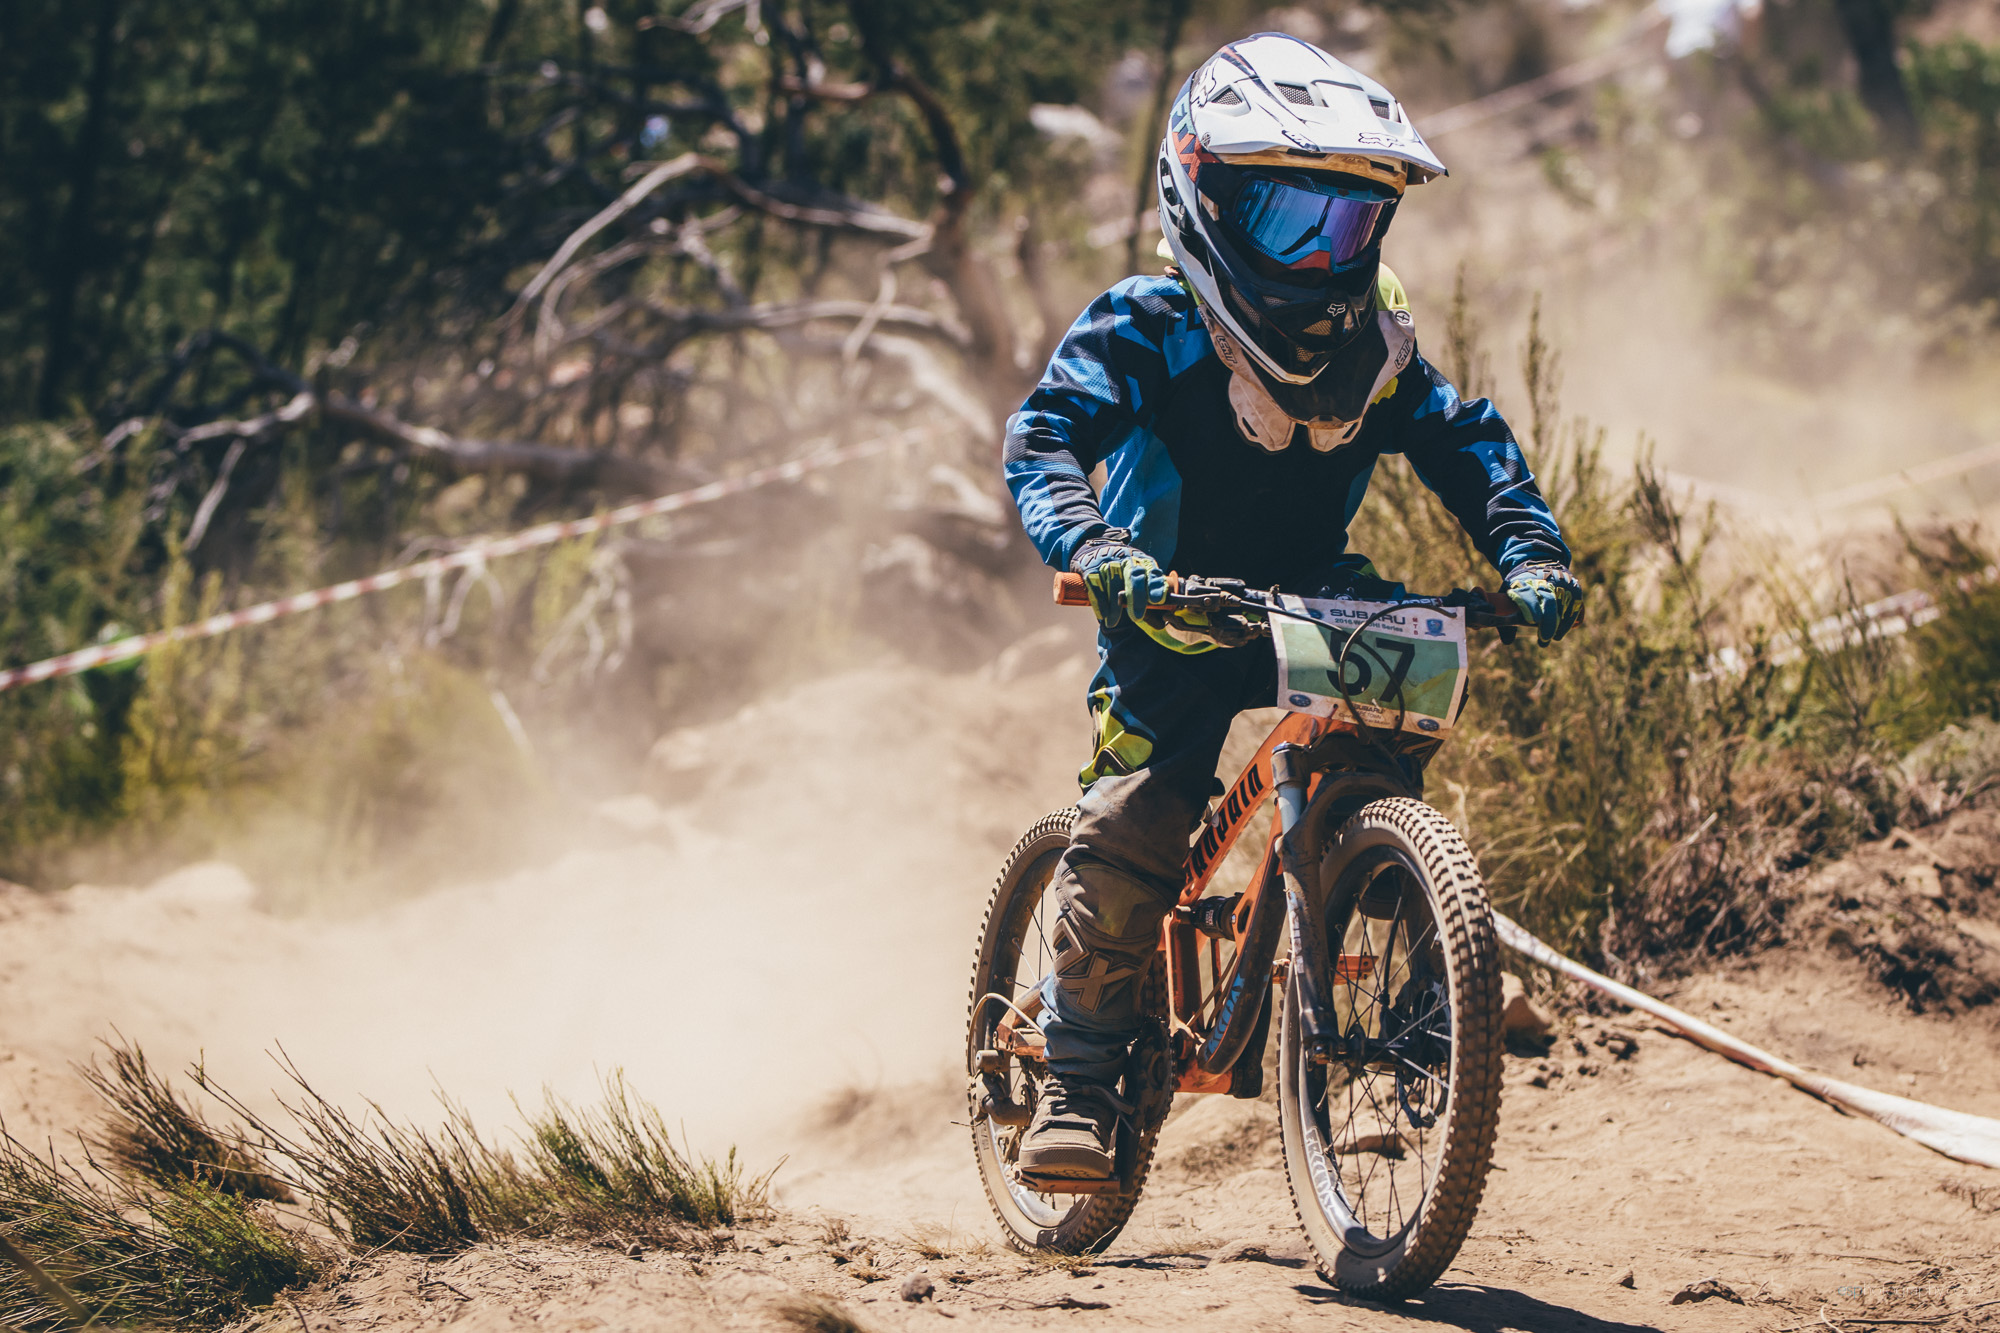 Nipper Boy and youngest member of the Wolfson clan, Benjamin Wolfson (8), puts his heart and soul into his run at the Helderberg Trails in Somerset West for the Western Cape Downhill Provincial, which doubled as the first round of the South African National Cup Series, at the weekend. Photo: Ewald Sadie